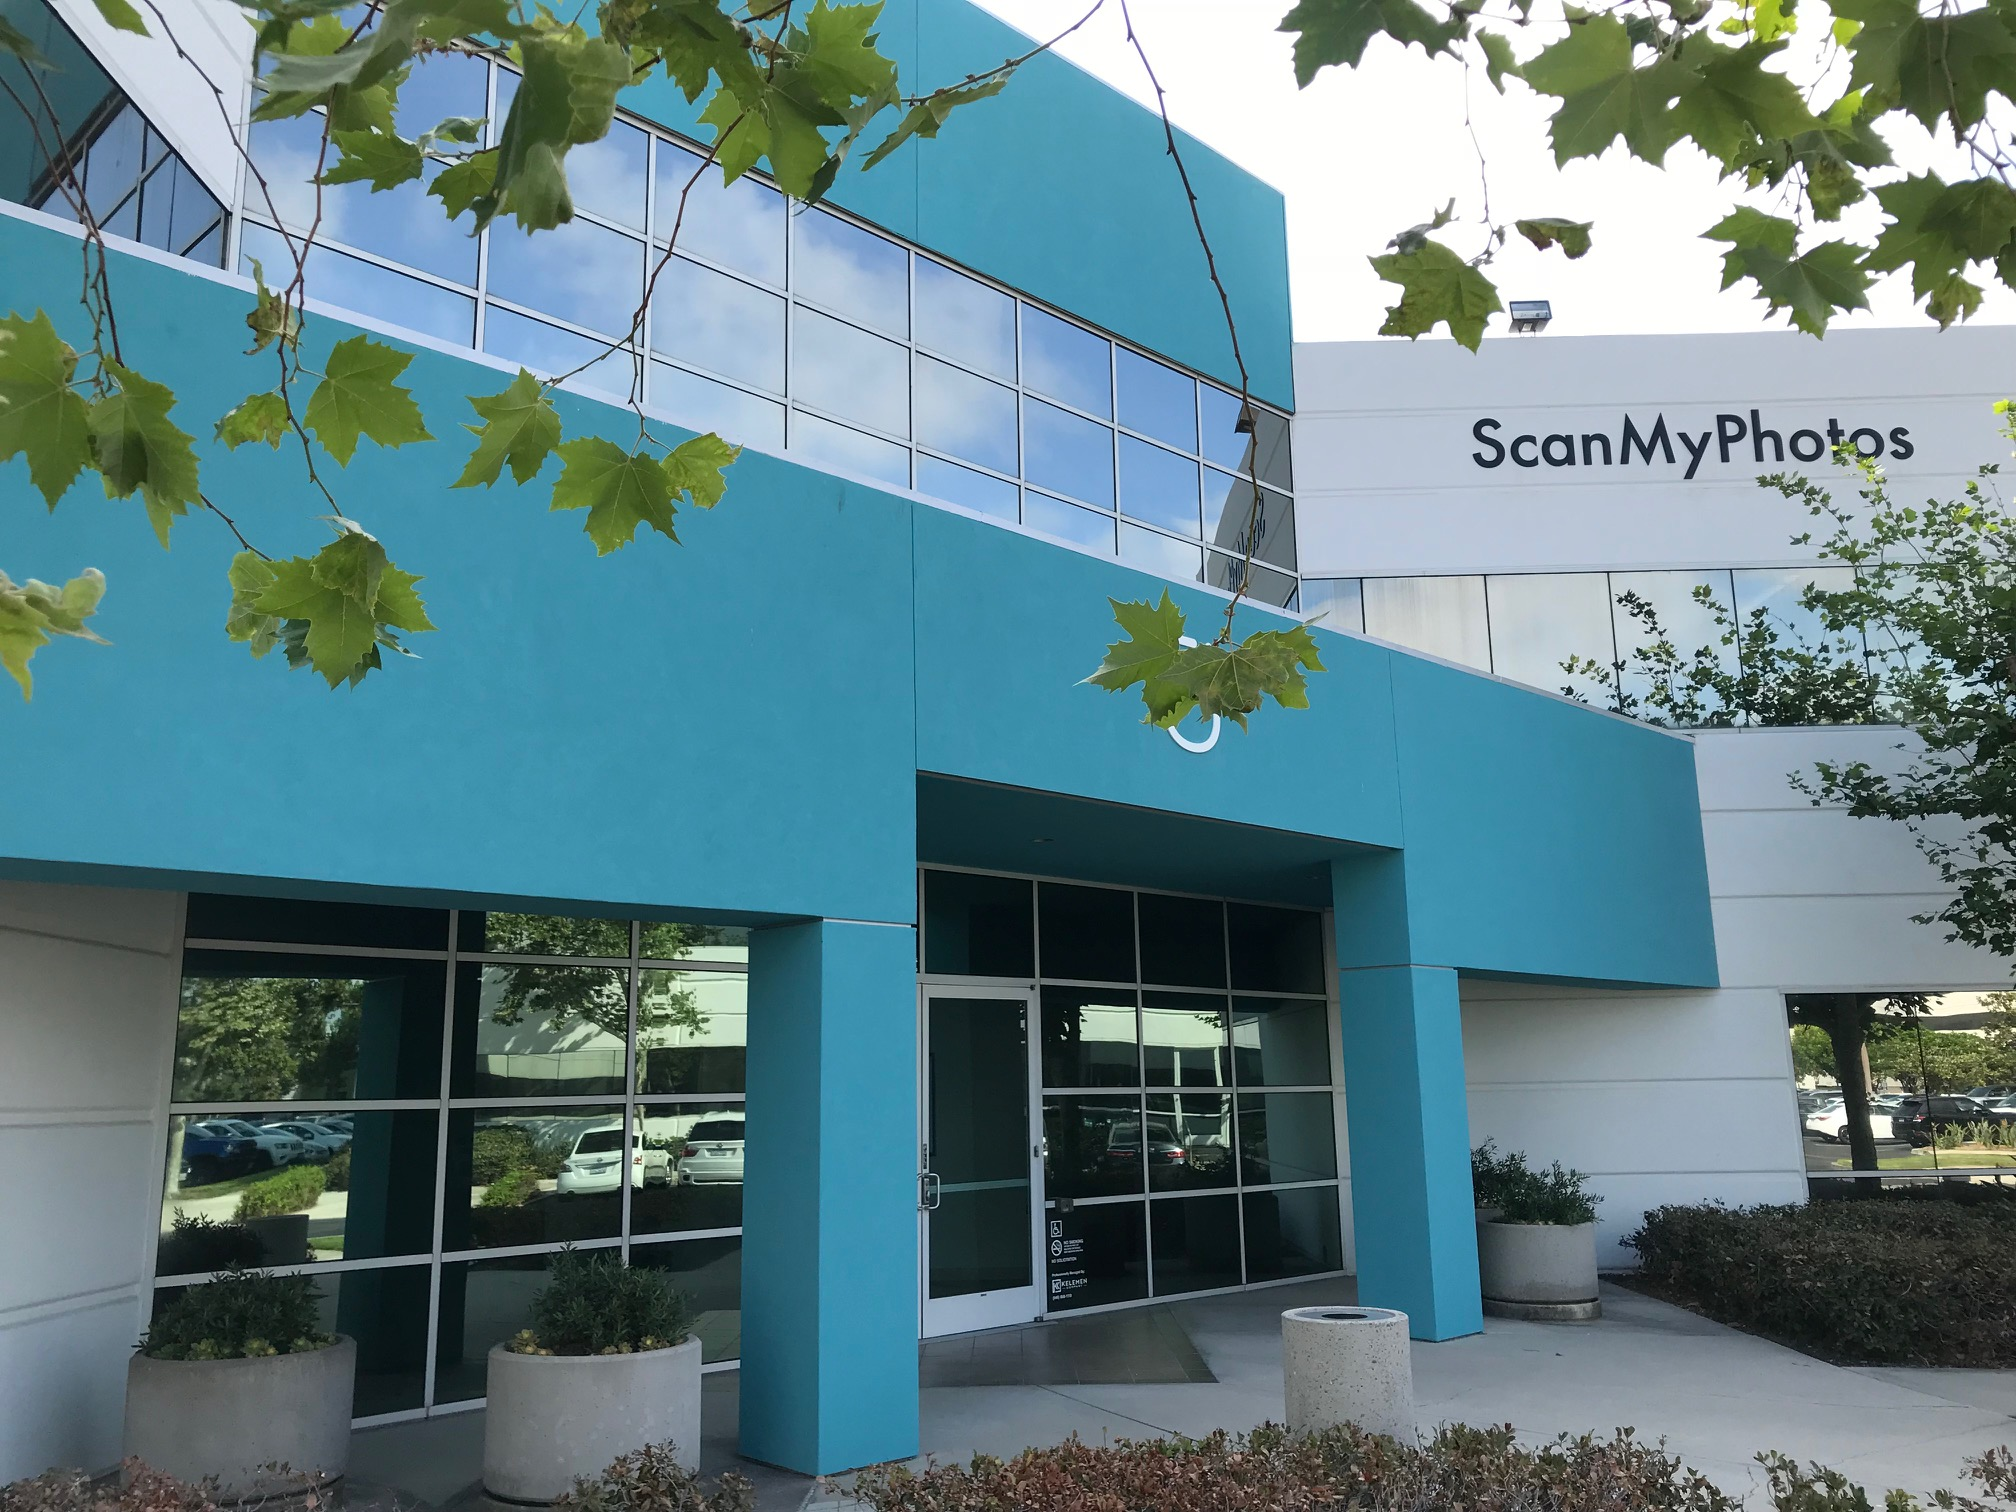 ScanMYPhotos Corporate Headquarters 2 - Photo Scanning Reviews: What People Are Saying About ScanMyPhotos